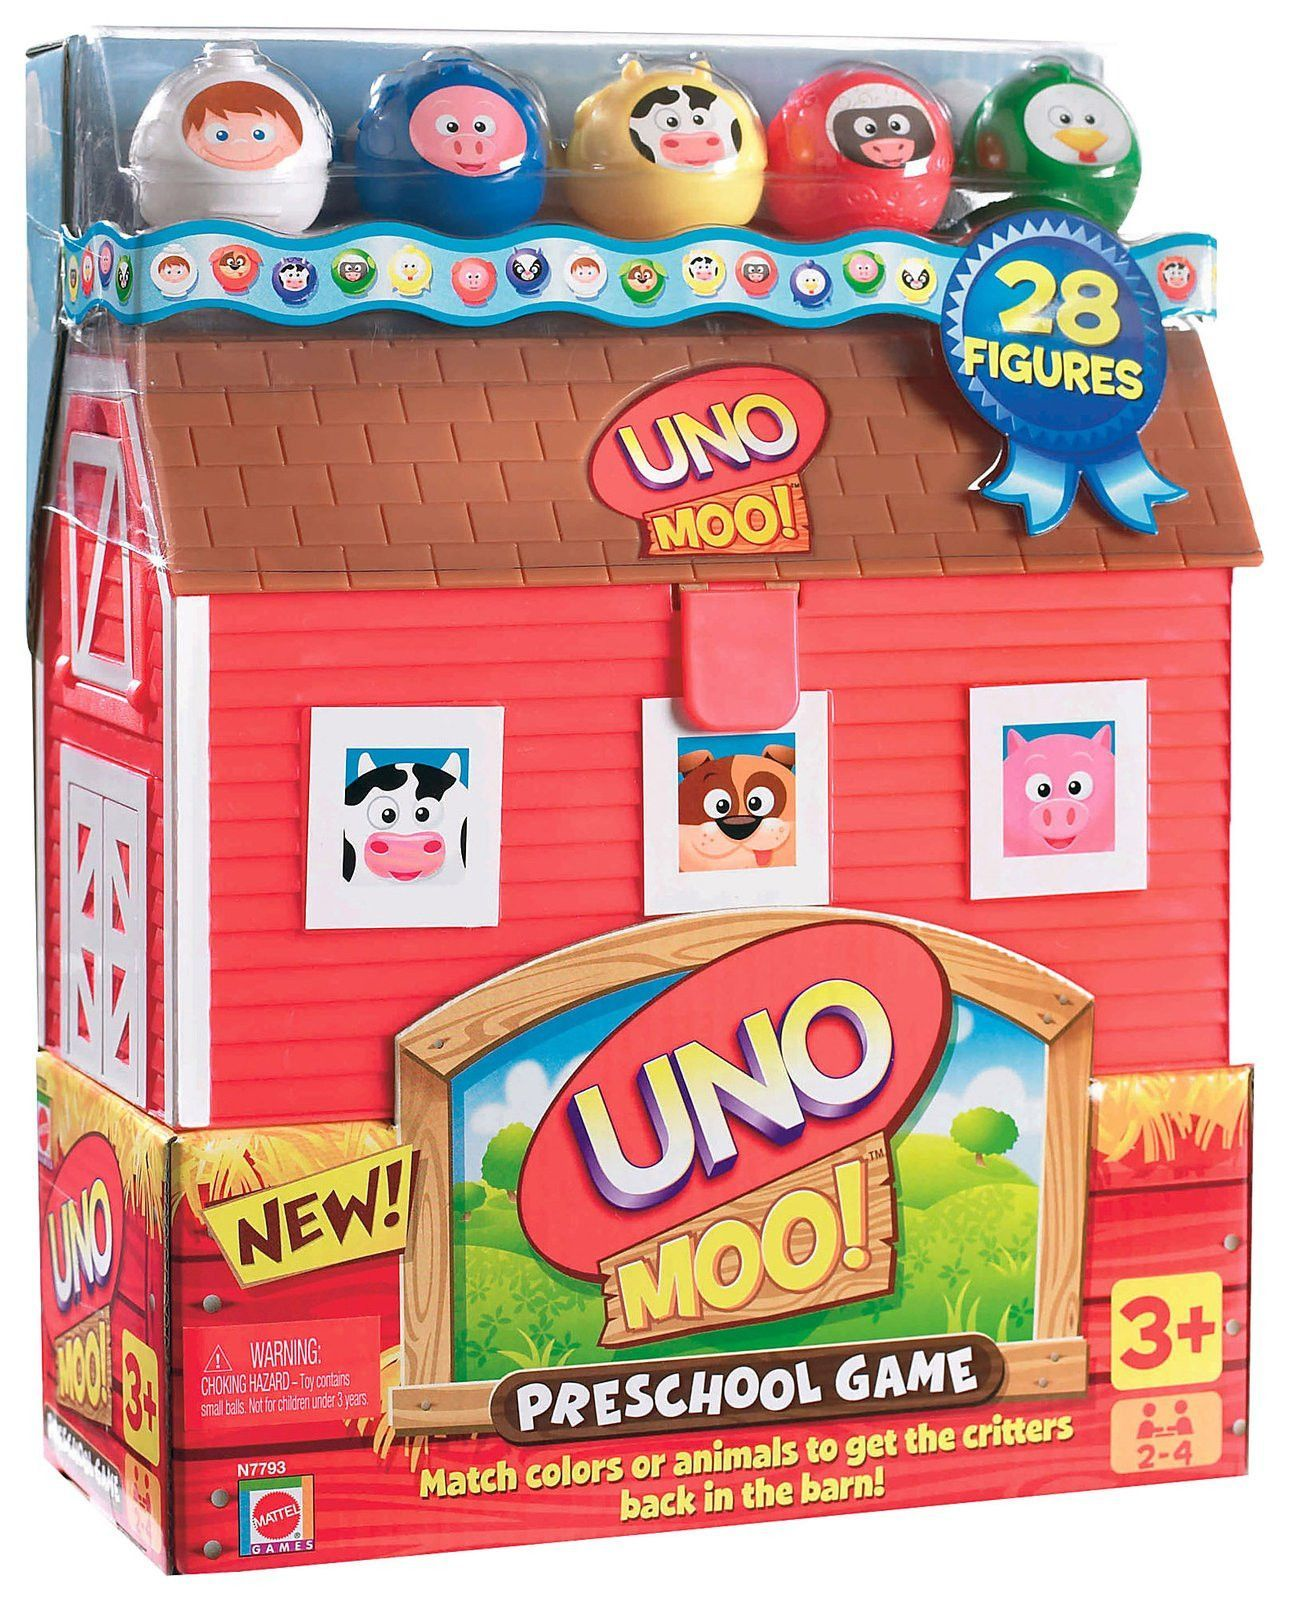 The farm animals have come out of their barn to play UNO